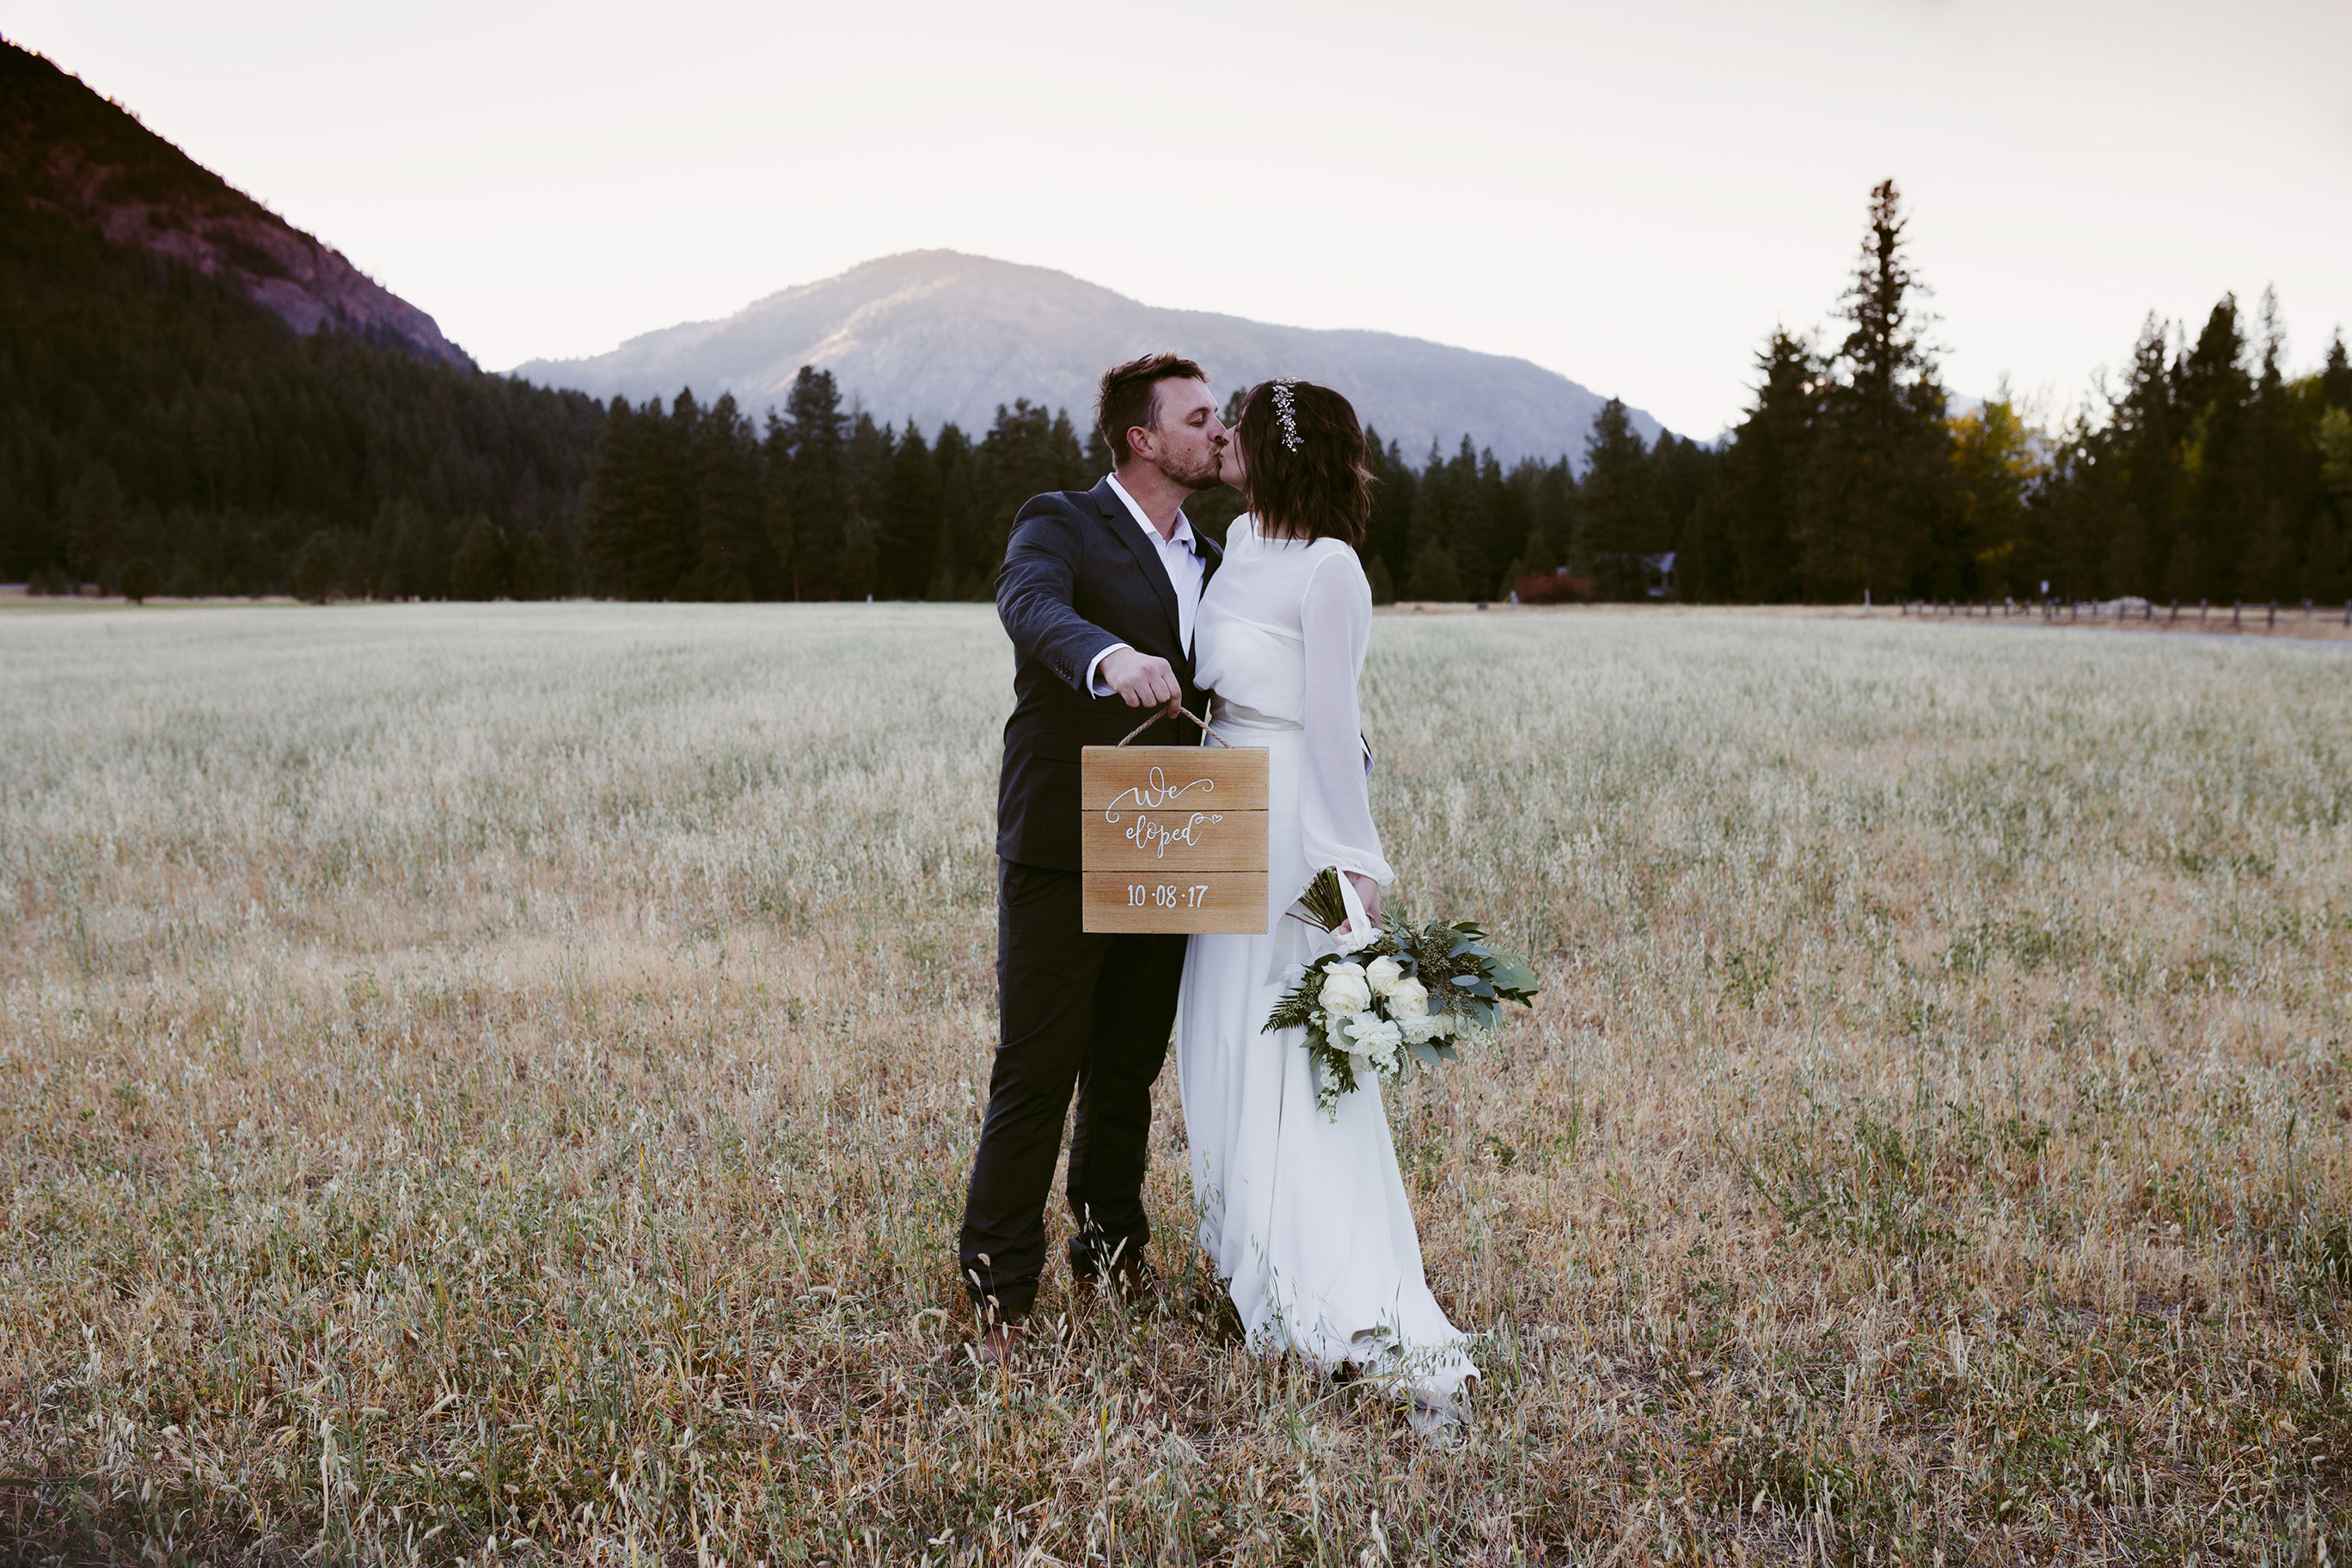 Bride and Groom adventure elopement on mountain